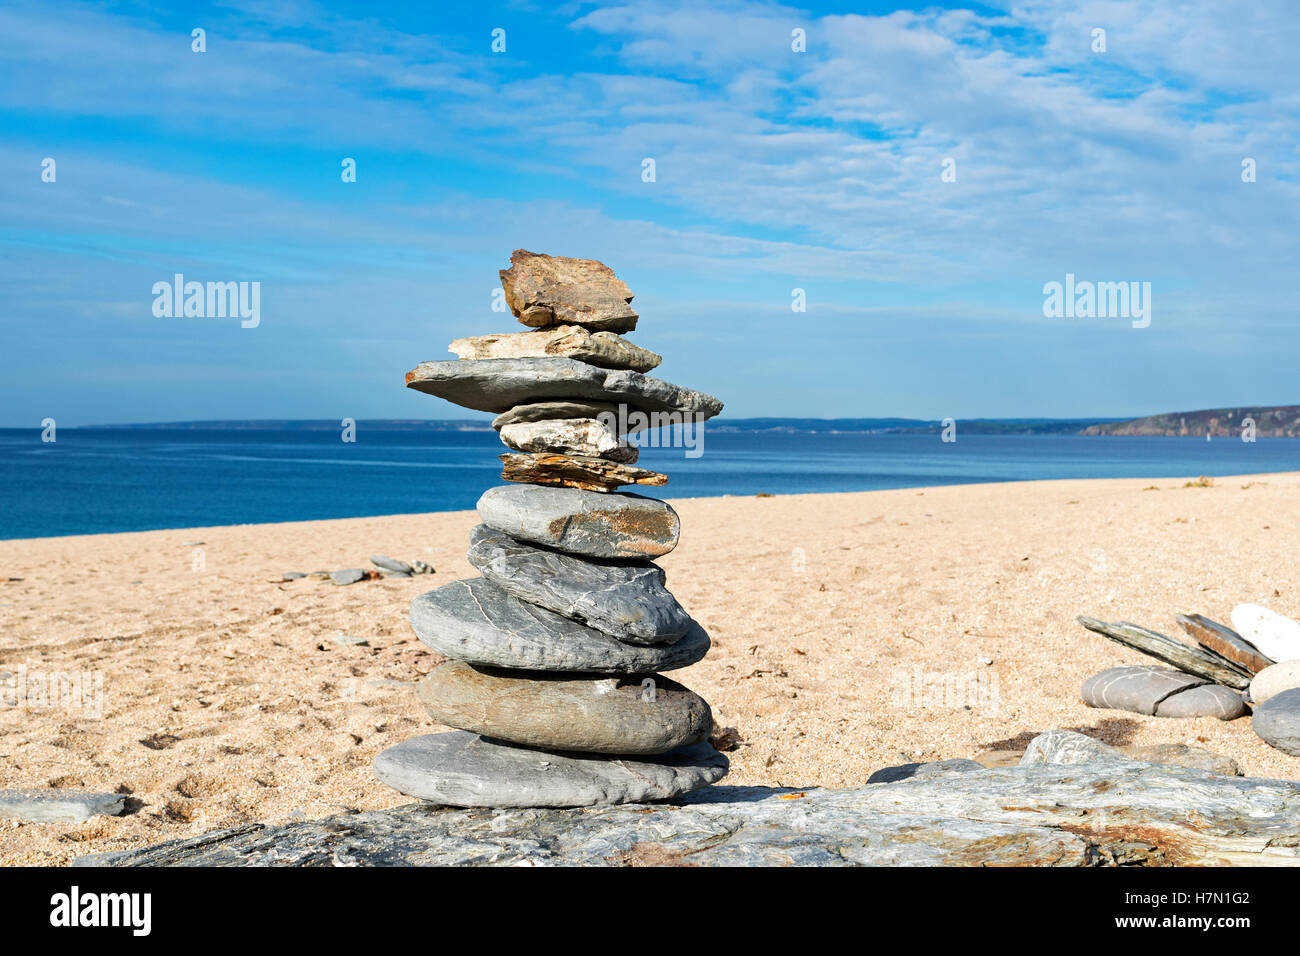 a stone tower on a beach in cornwall, uk - Stock Image